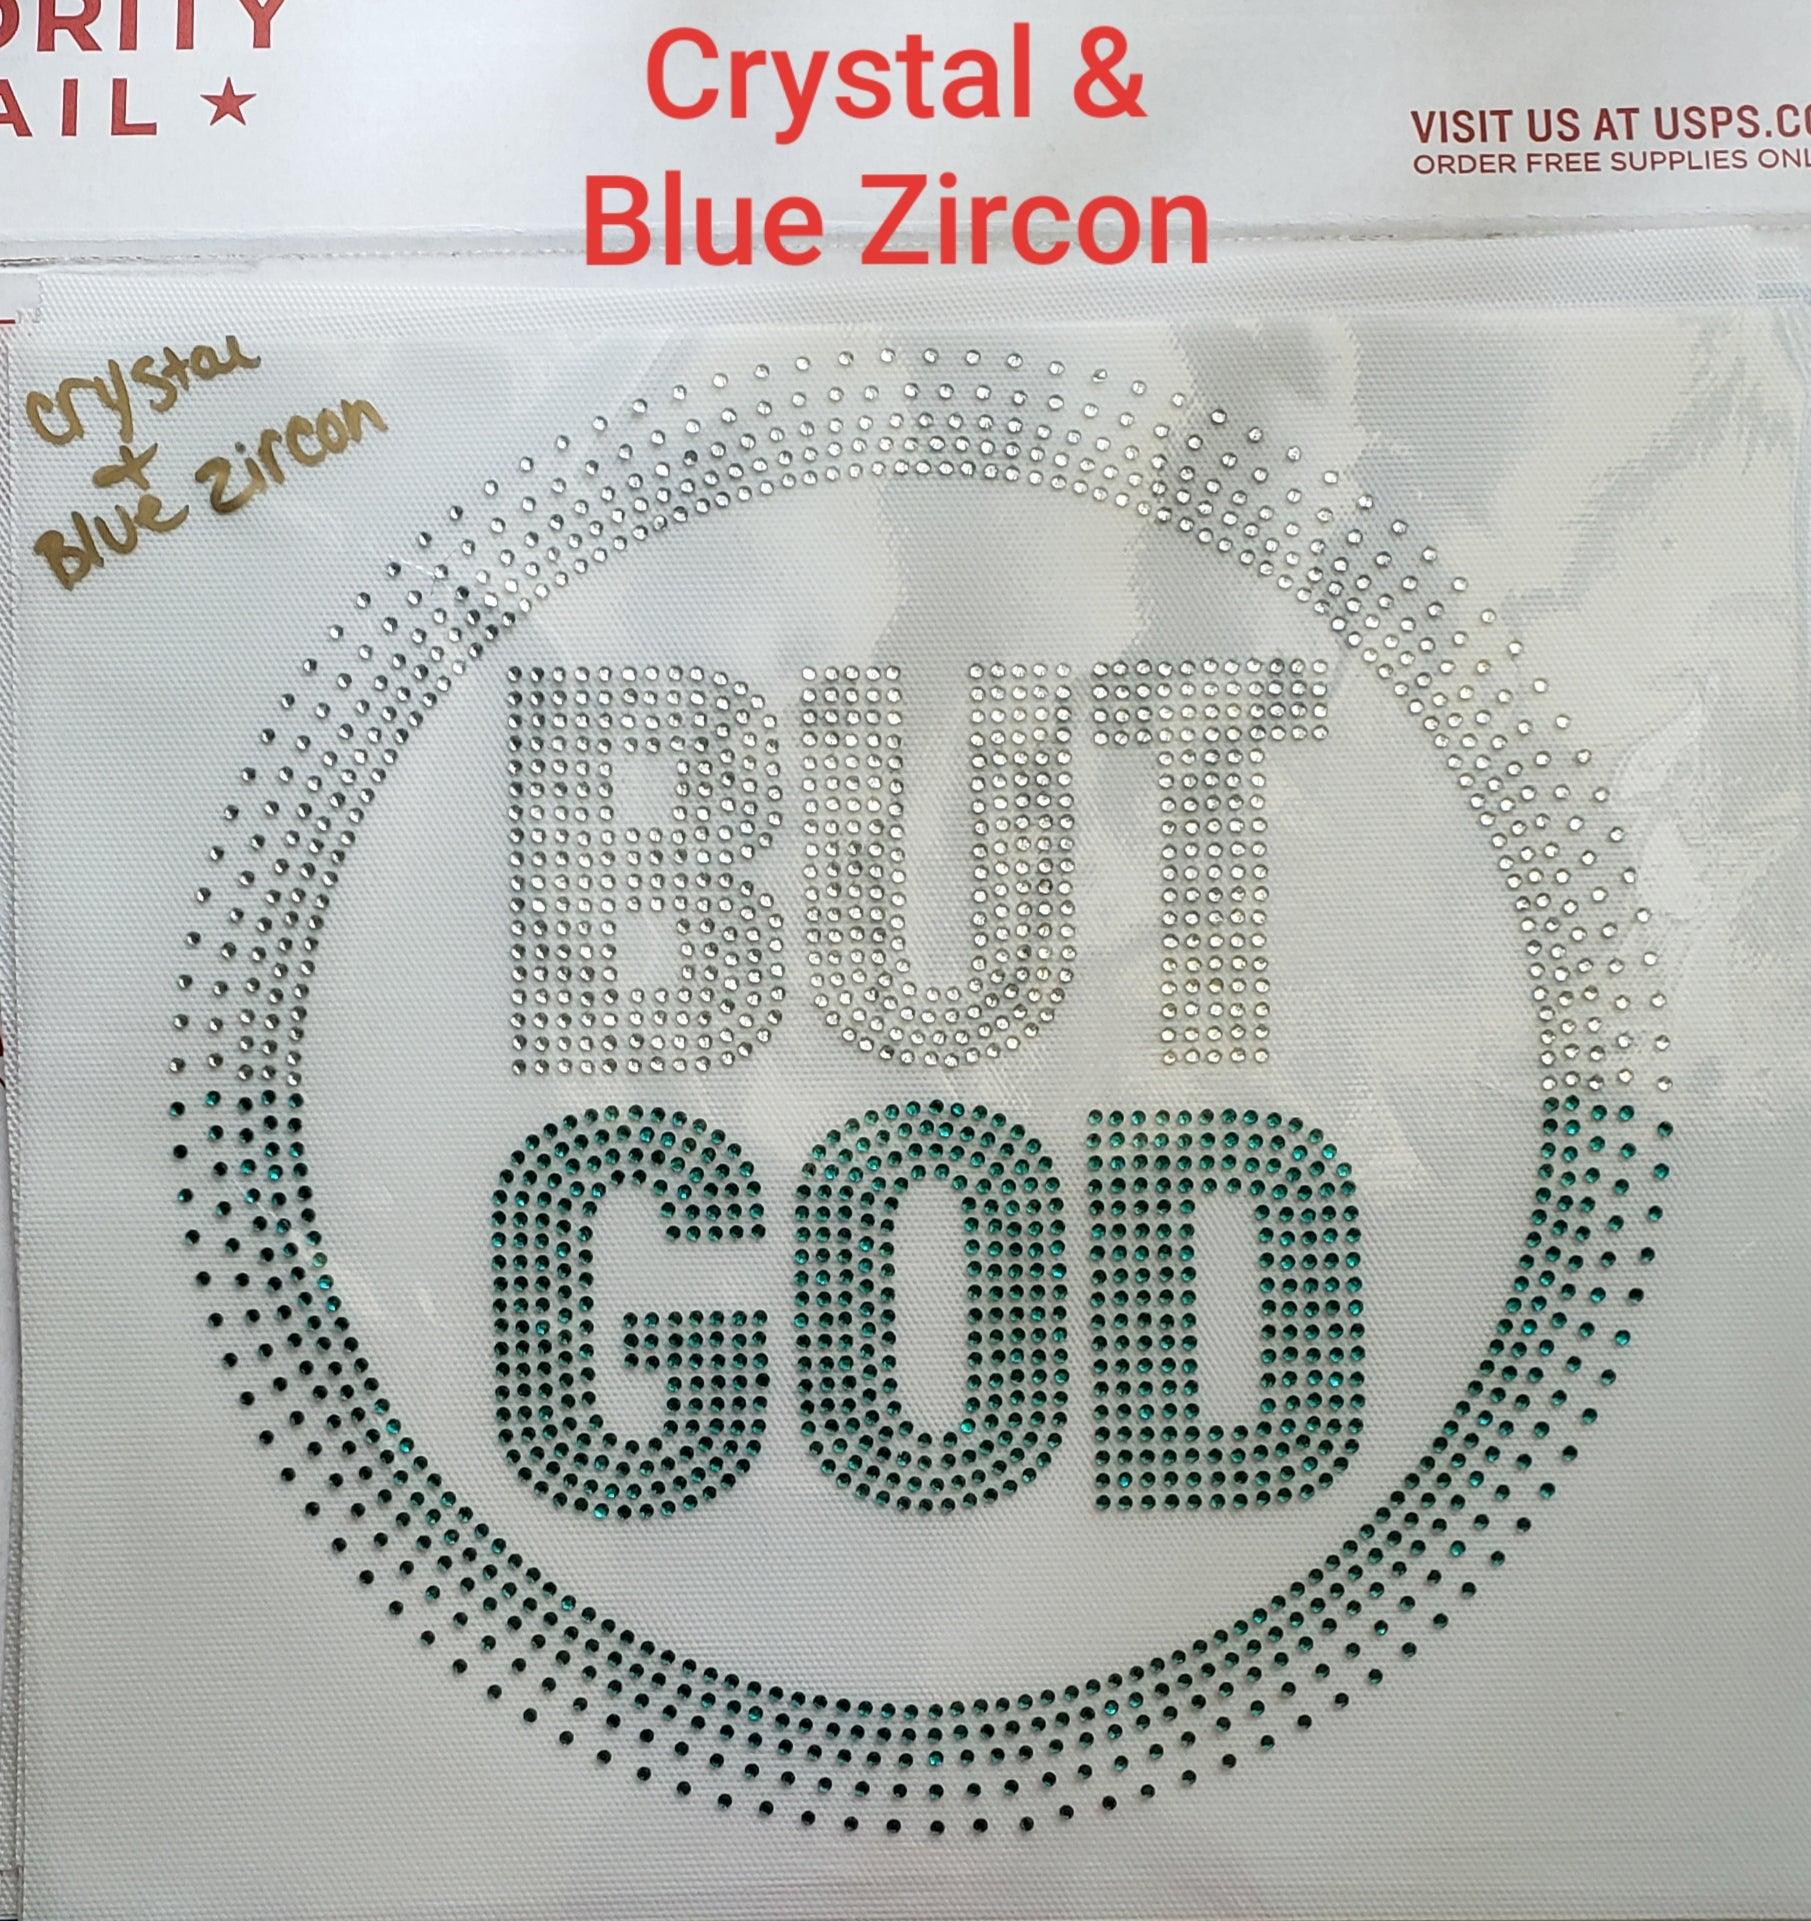 BUT GOD RHINESTONE TRANSFER SHEET - JVN Creations & Designs